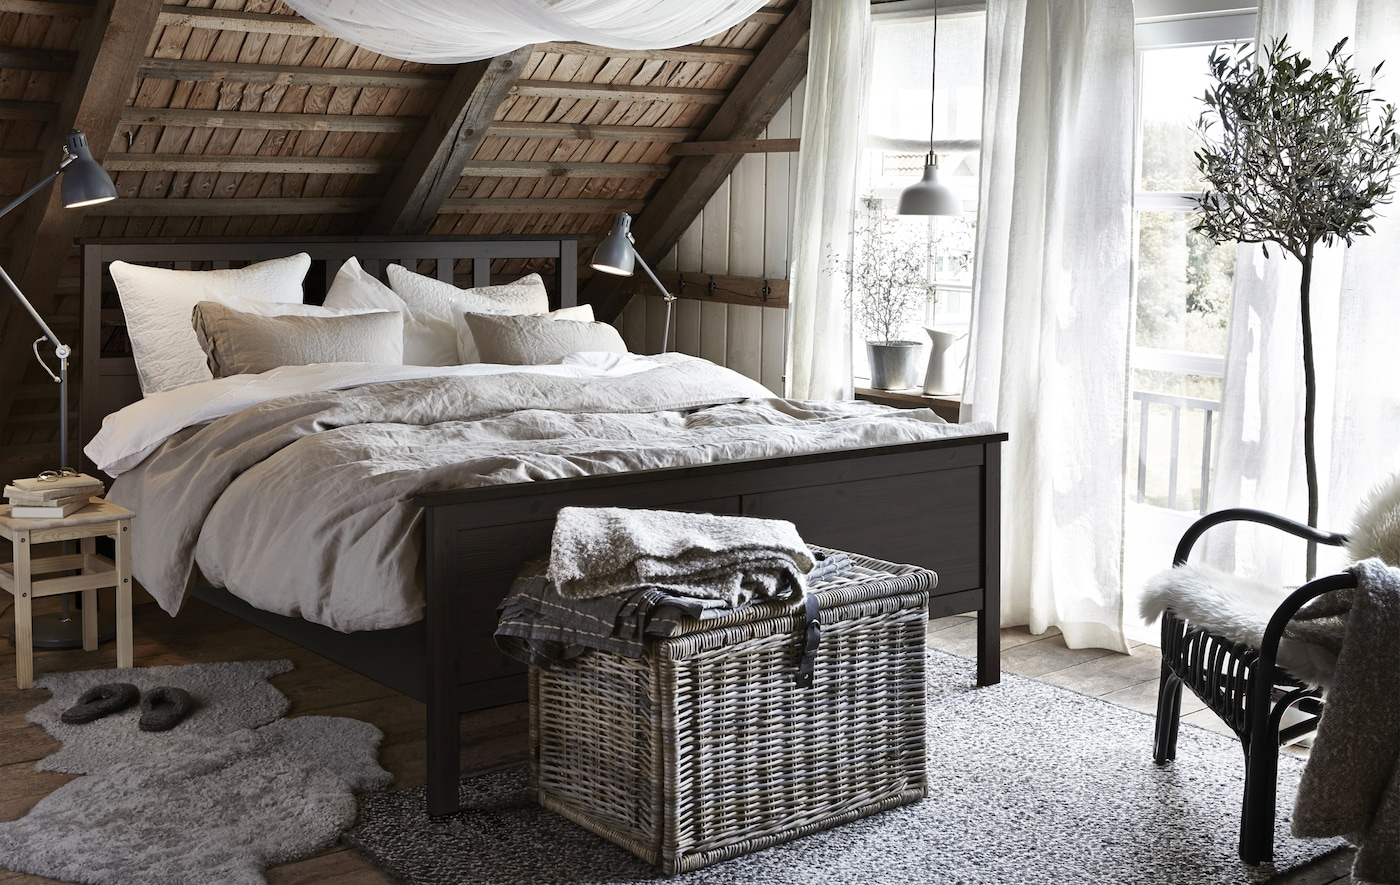 IKEA has rustic bedroom furniture like HEMNES bed frame in black-brown stained solid pine that's sustainably sourced. The frame is robust with traditional details and a real sense of craftsmanship.